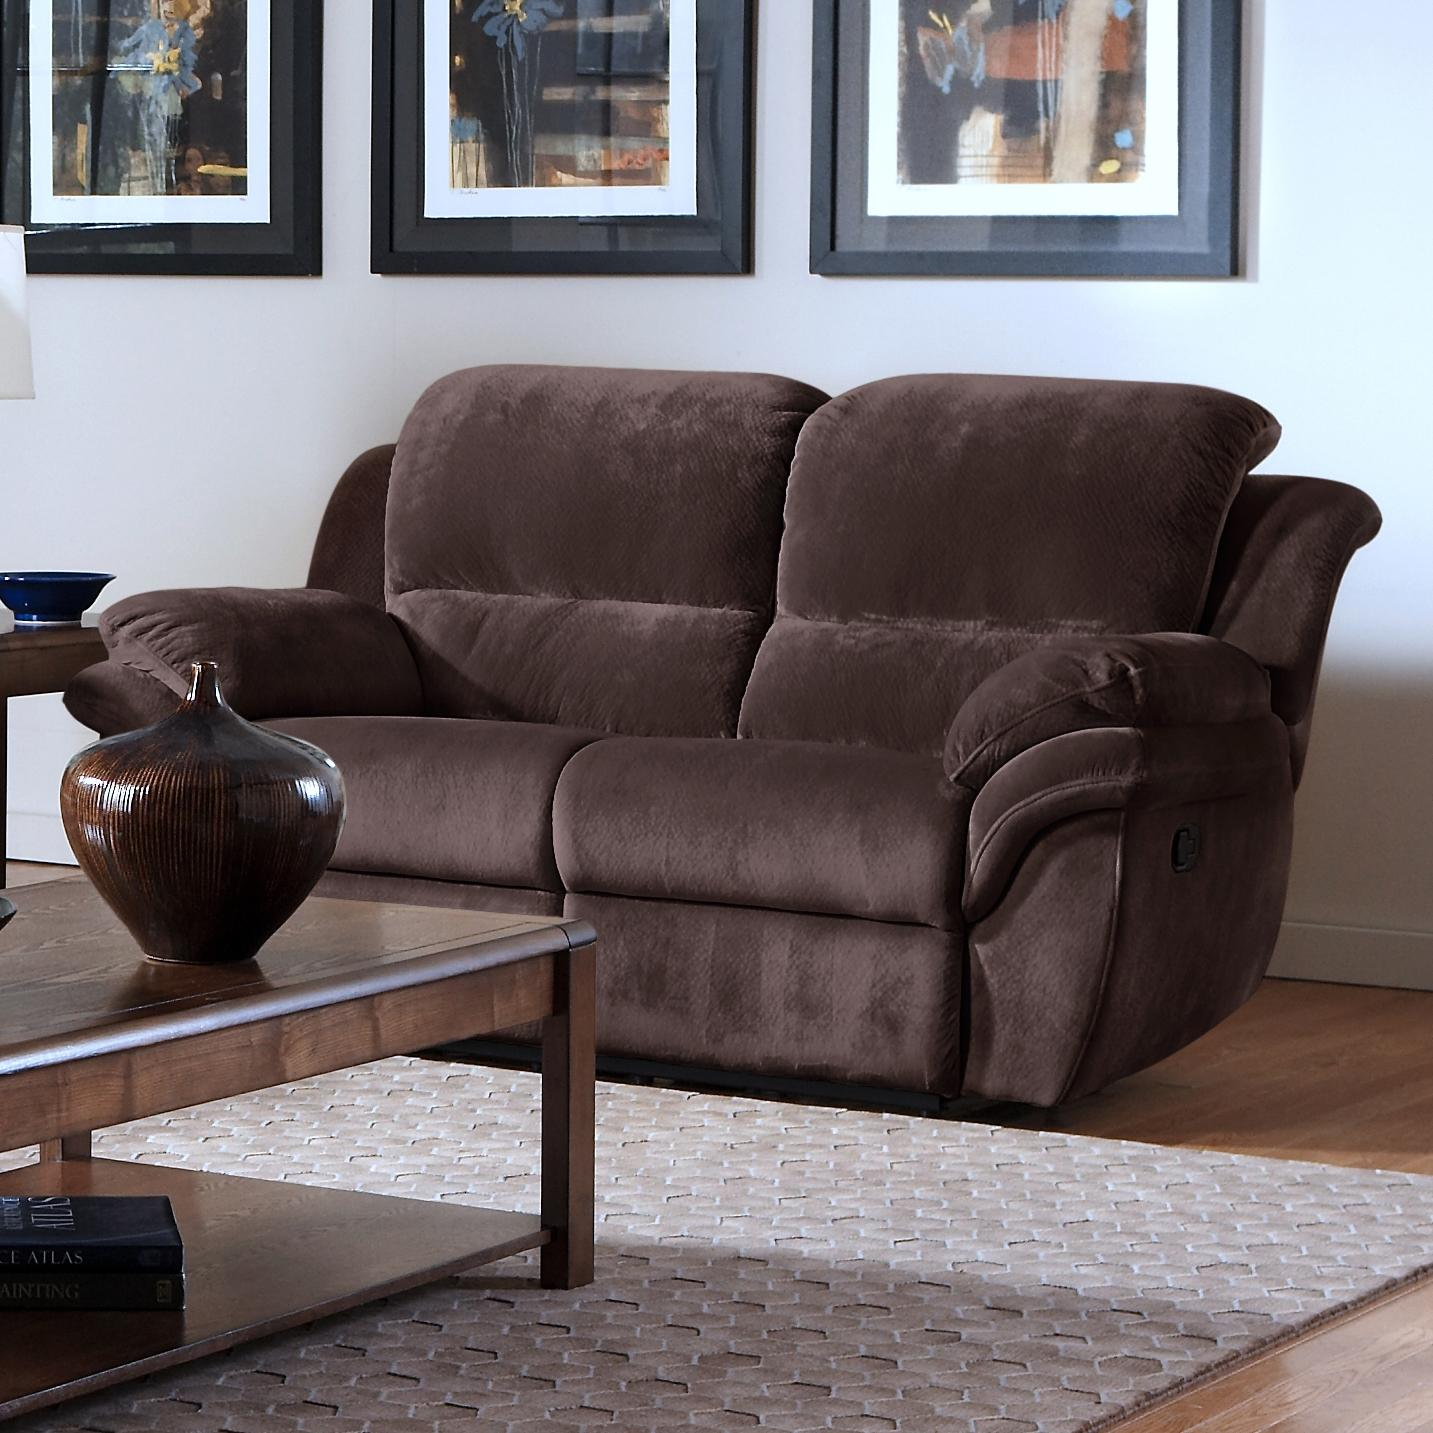 New Classic Pebble Reclining Love Seat - Item Number: 20-897-20-PSH